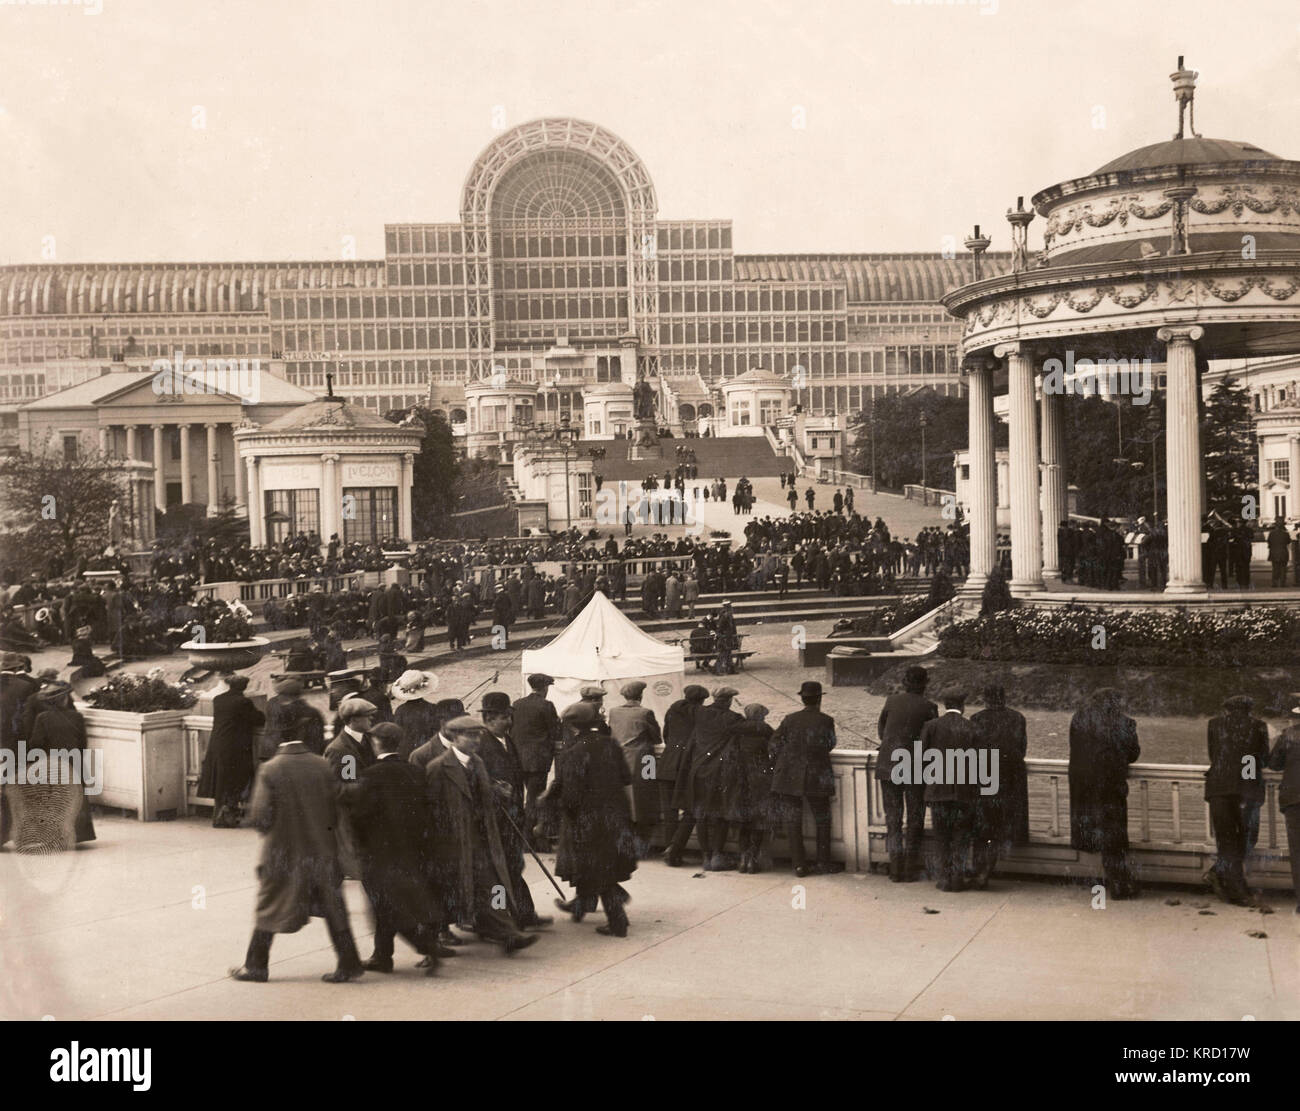 View of the Central Avenue leading to the Crystal Palace in south London at the time of the annual Brass Band Festival. - Stock Image